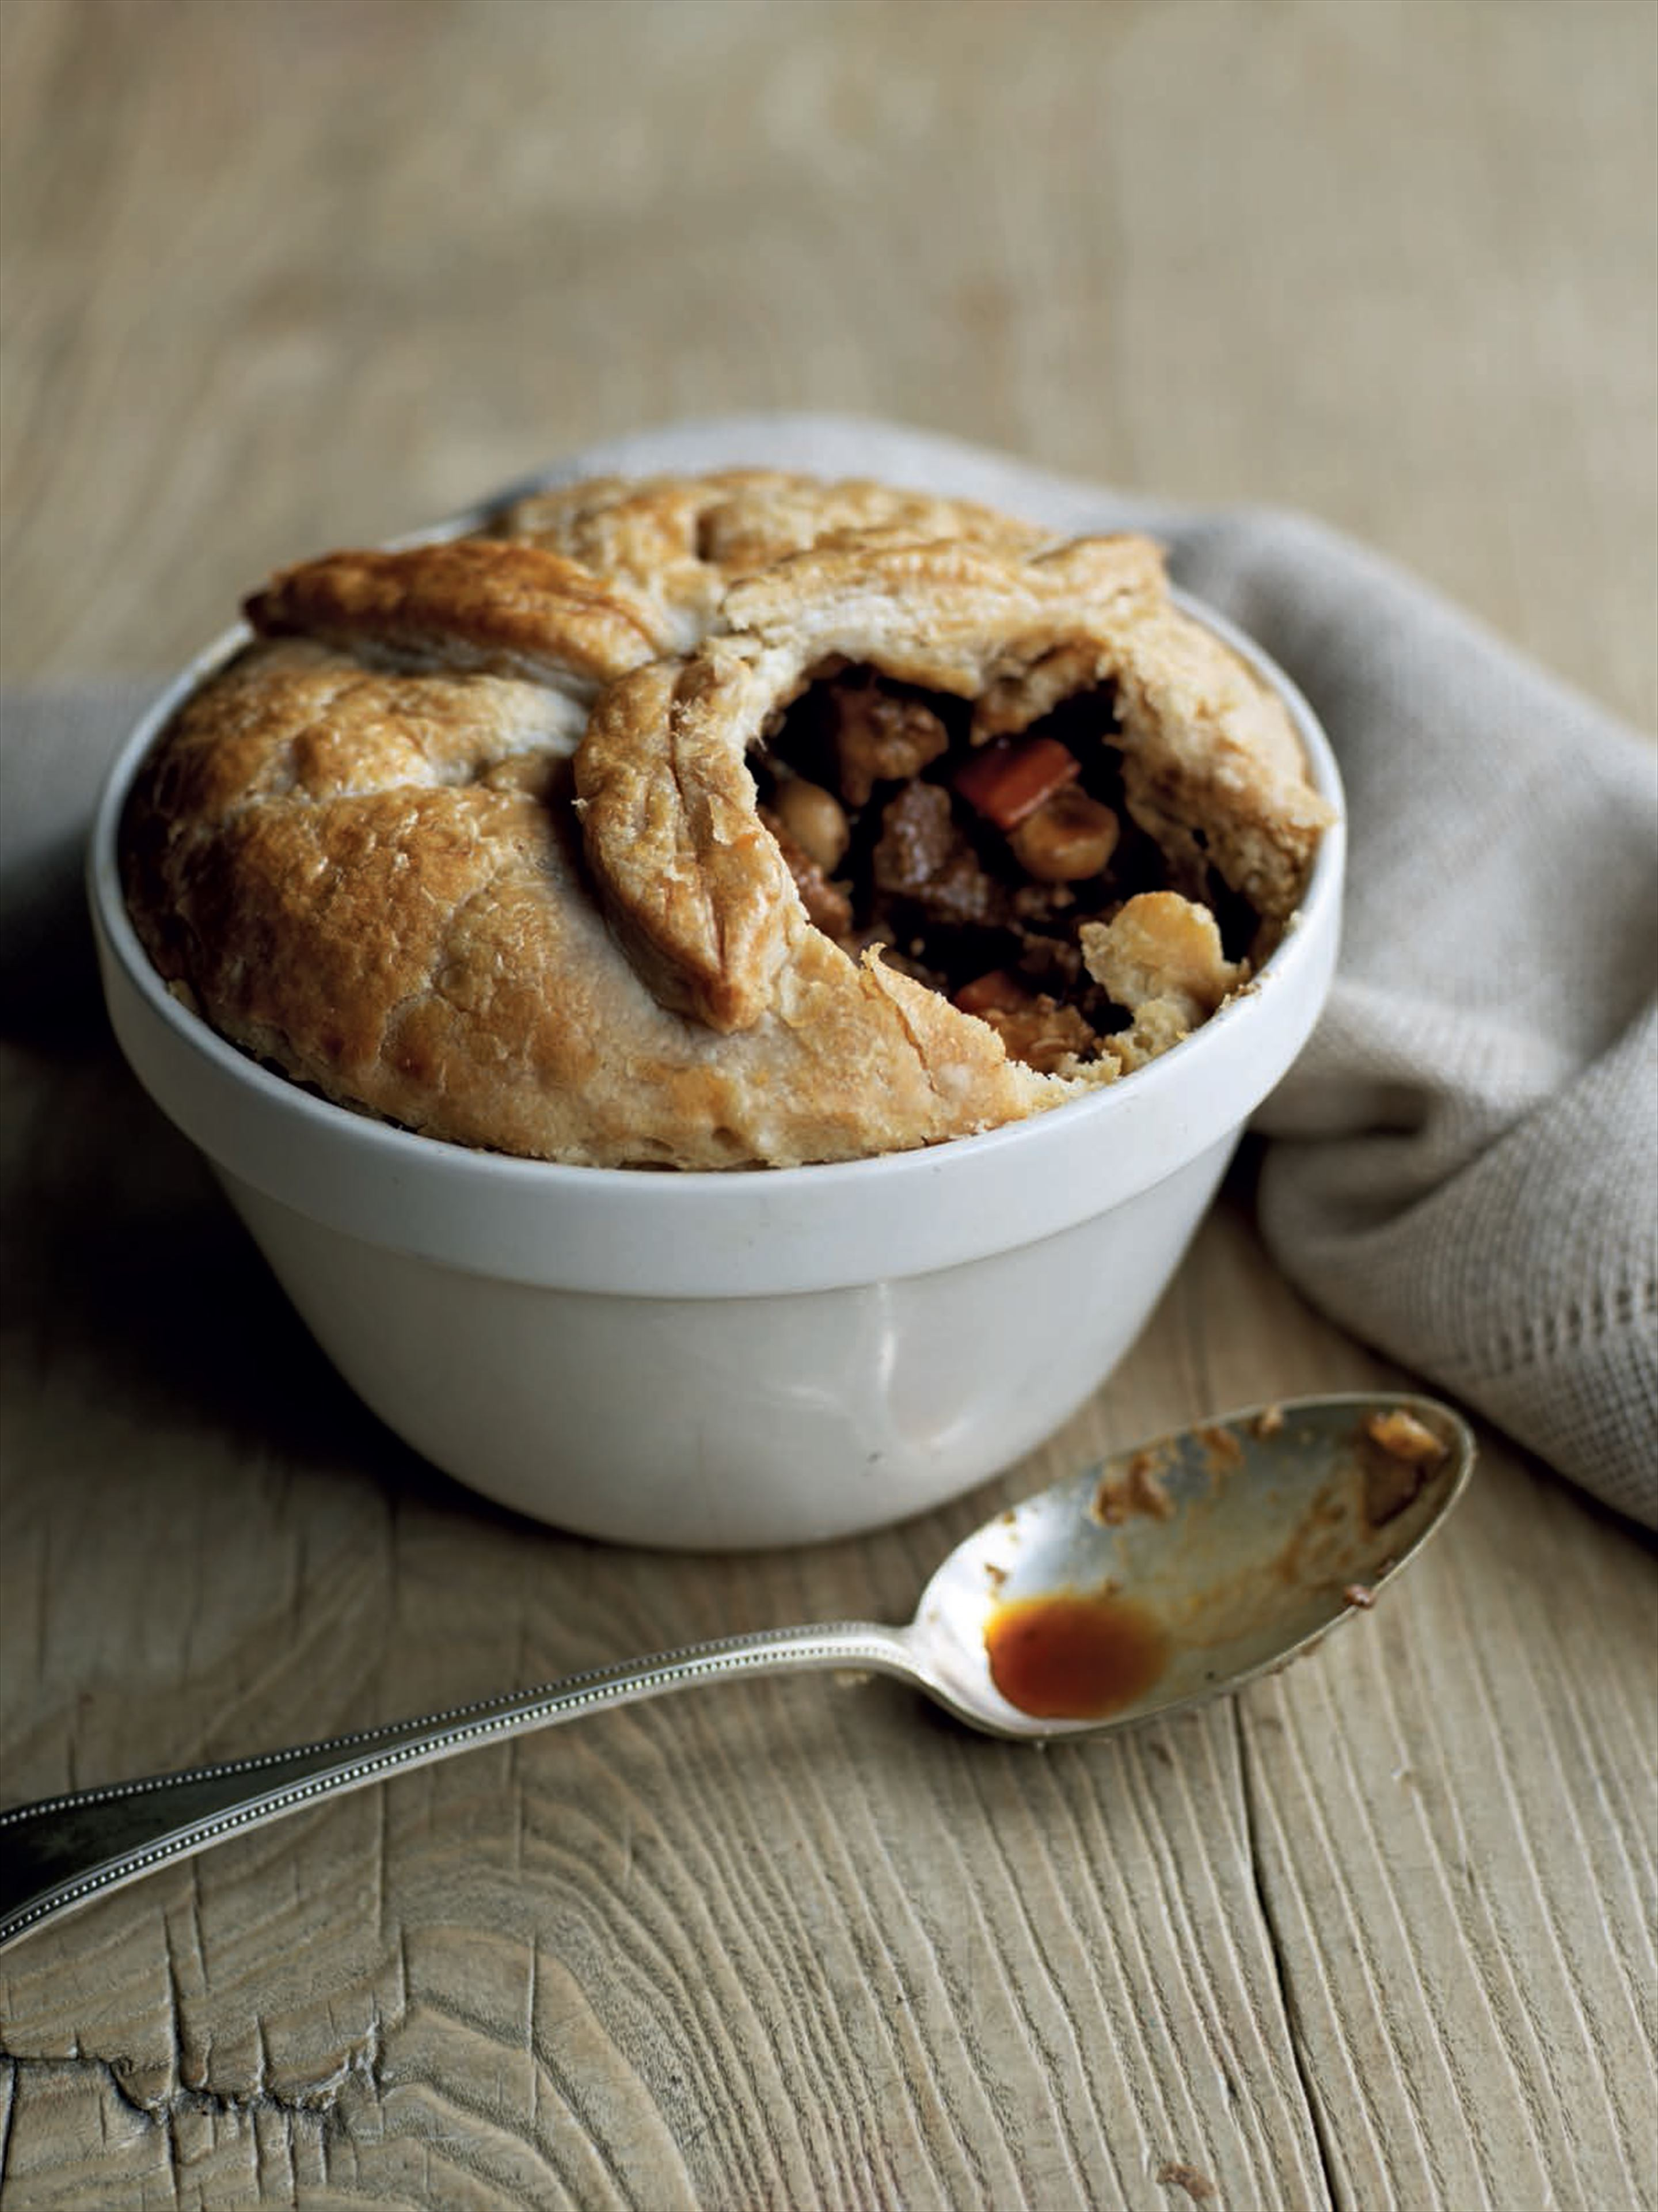 Rabbit, ale and hazelnut suet pie